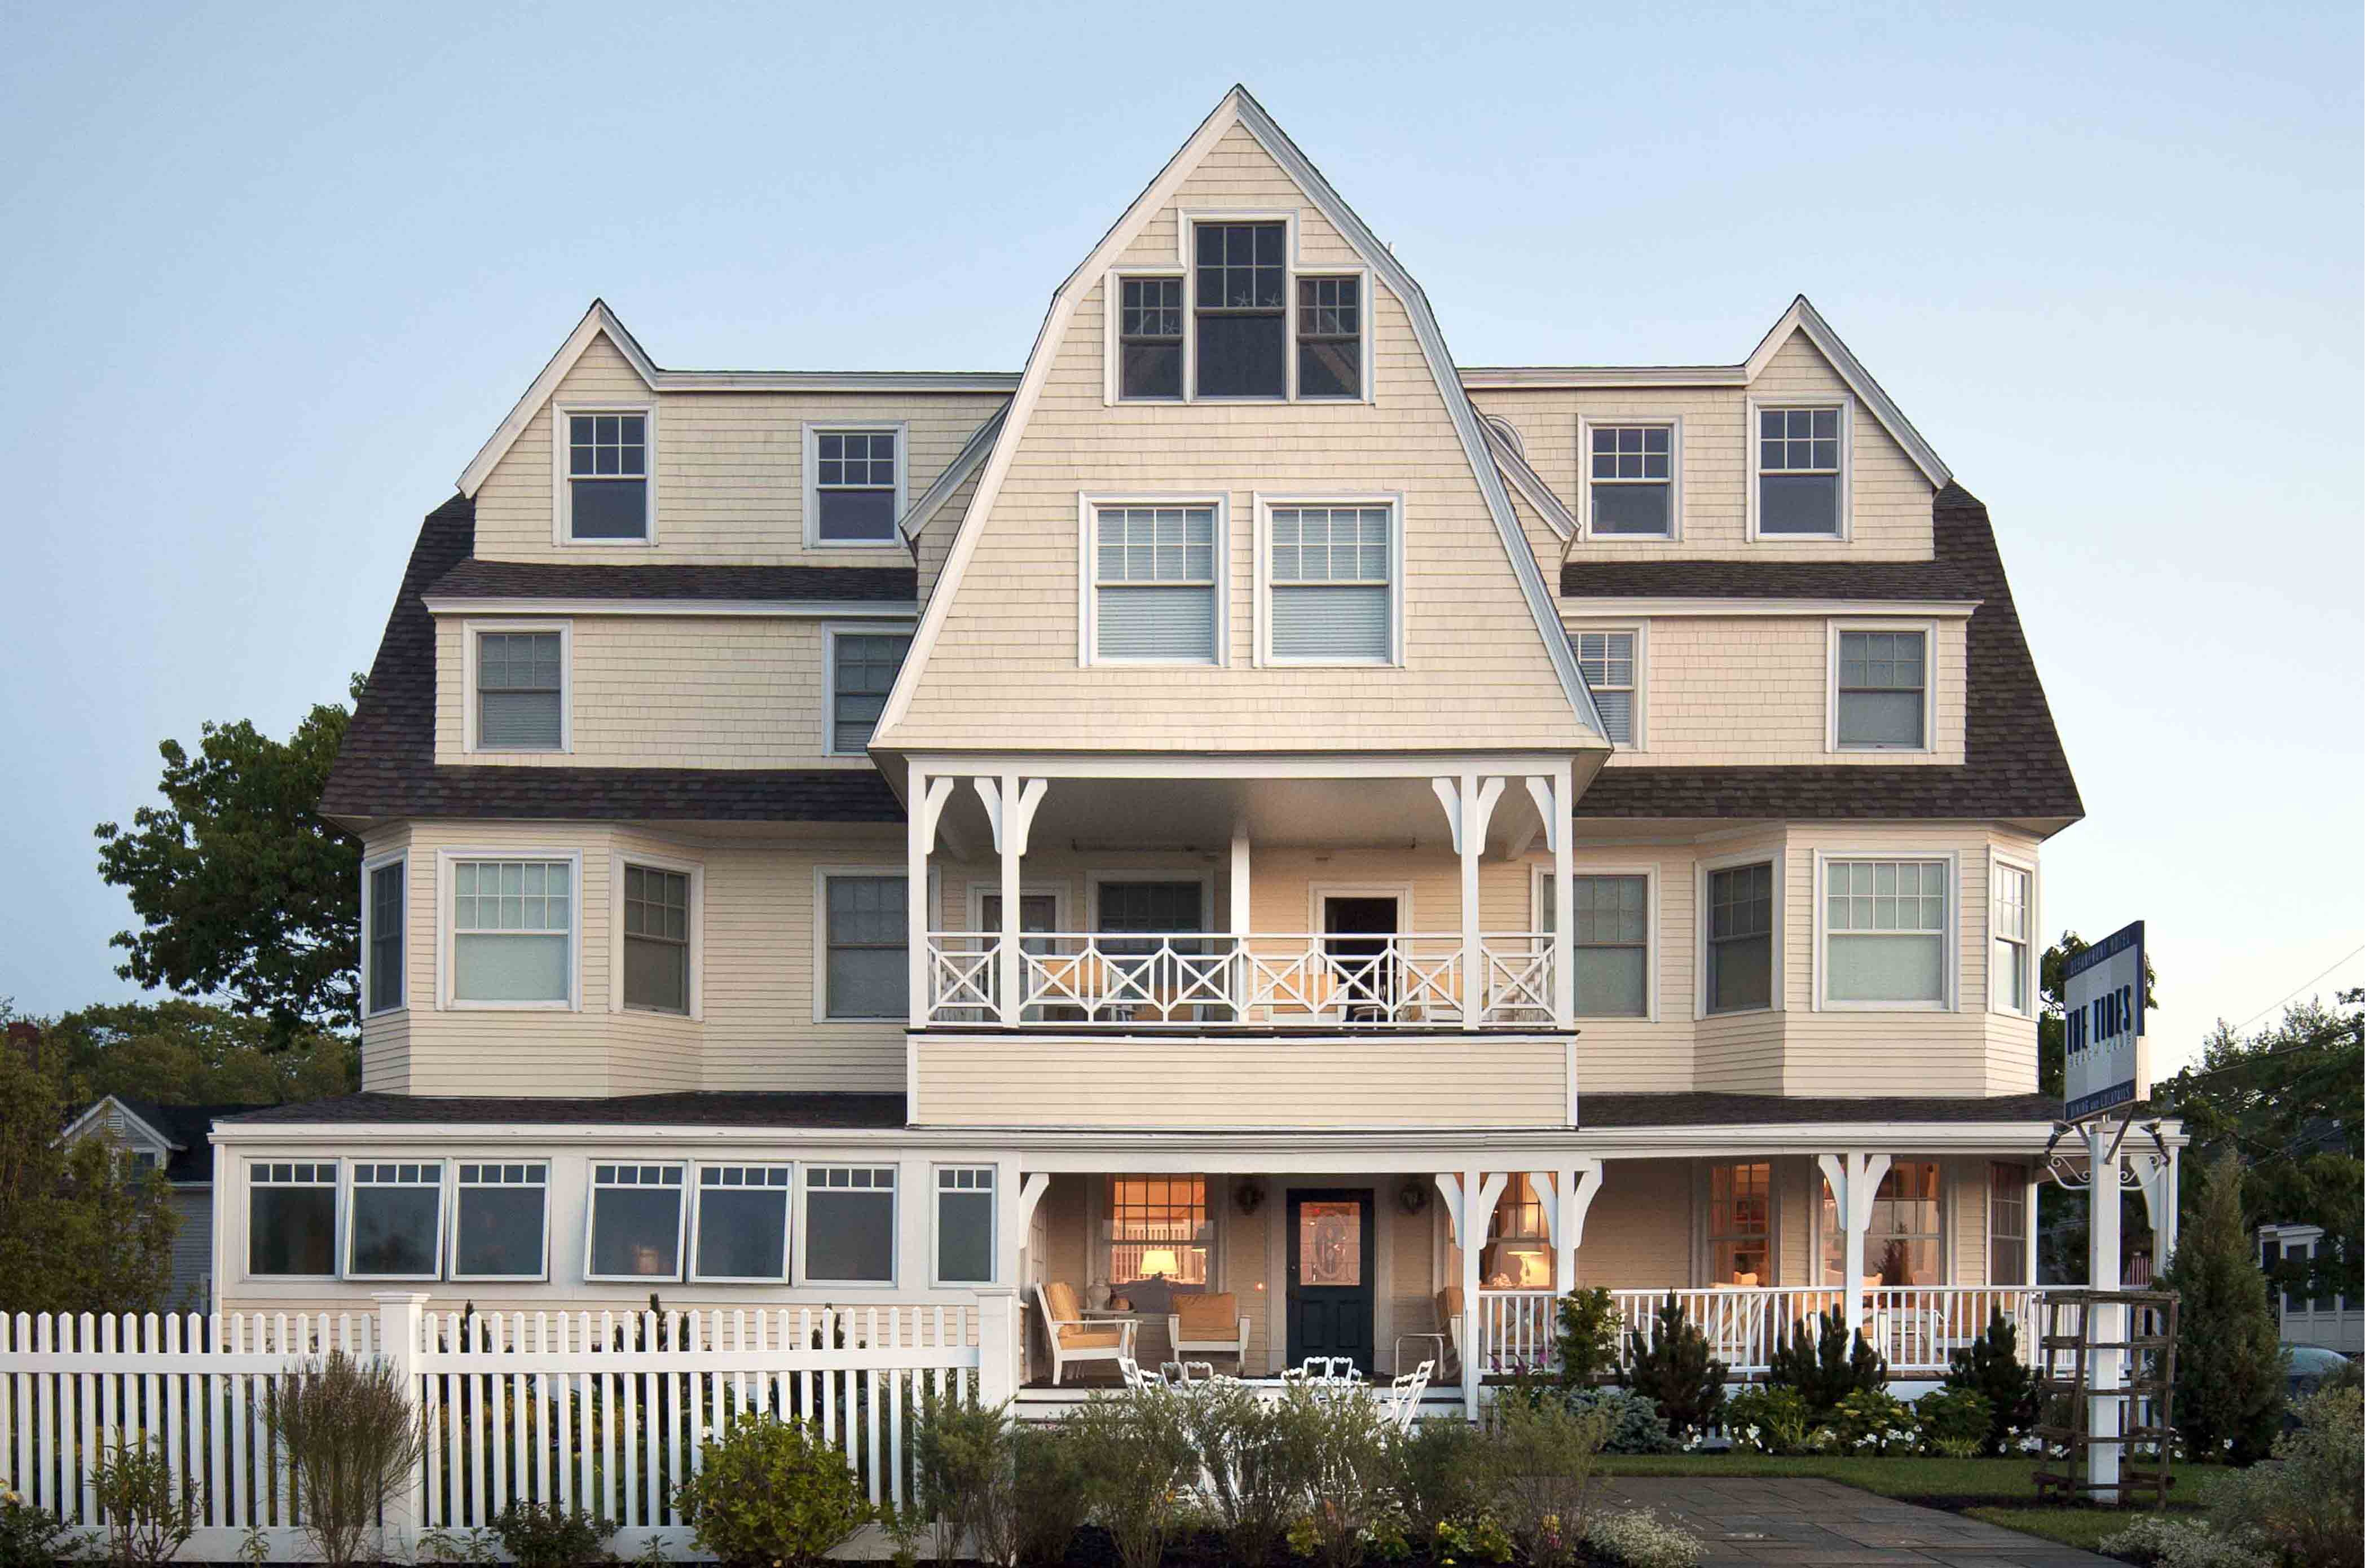 The Tides Beach Club – Kennebunkport, ME